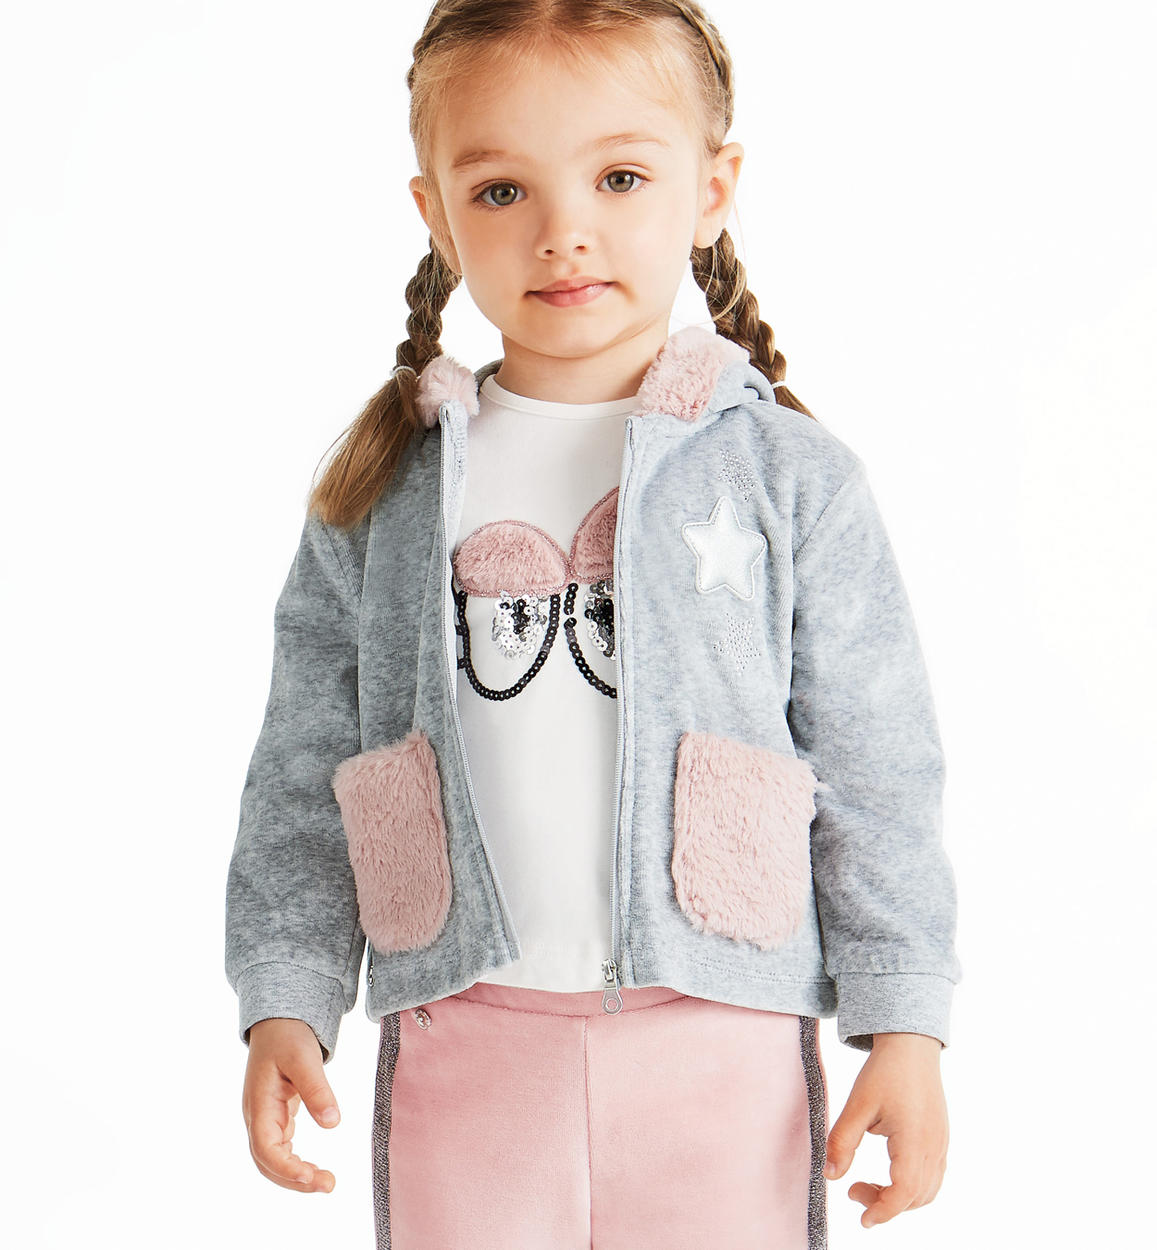 bd95896e8c Chenille sweatshirt with faux fur details for baby girls from 6 months to 7  years Sarabanda